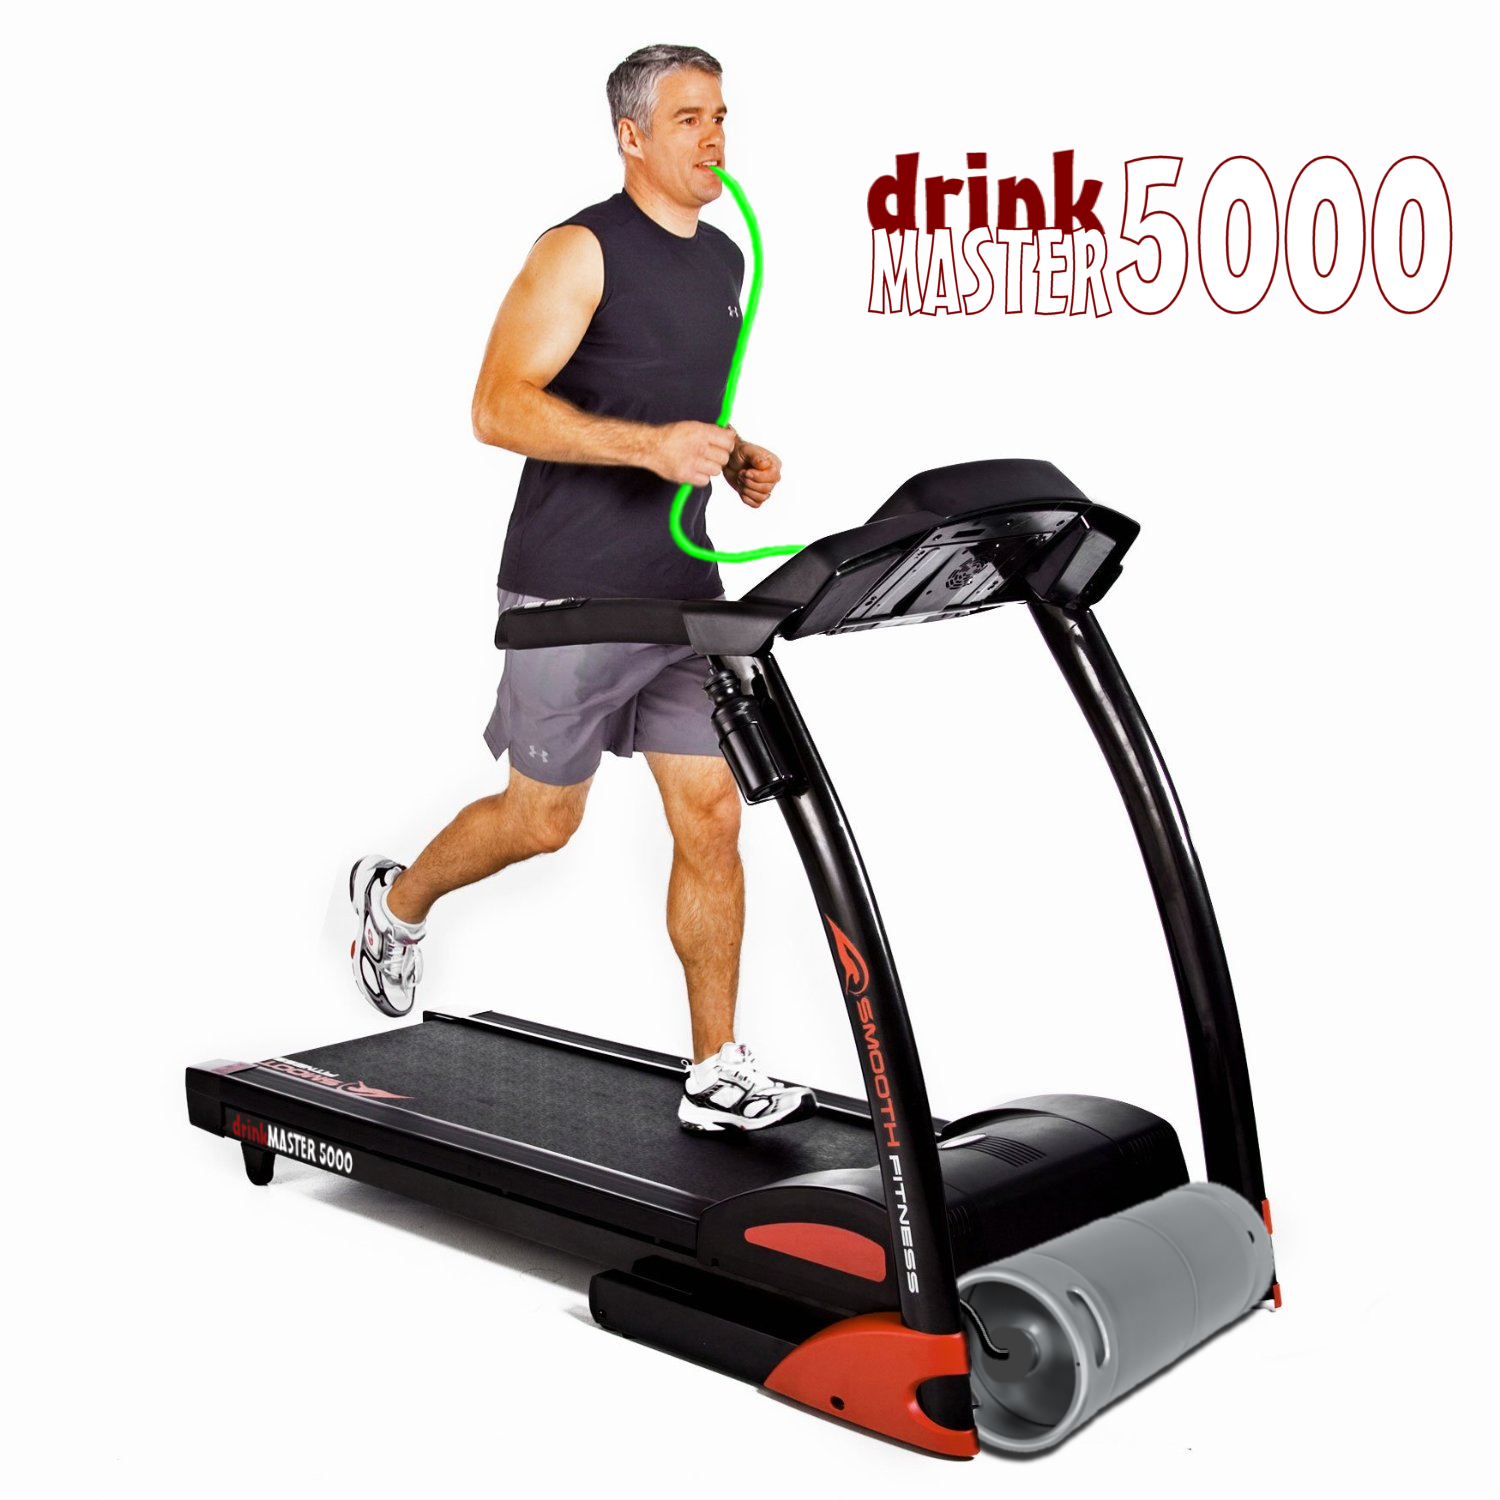 Bud Miller on the drinkMASTER 5000